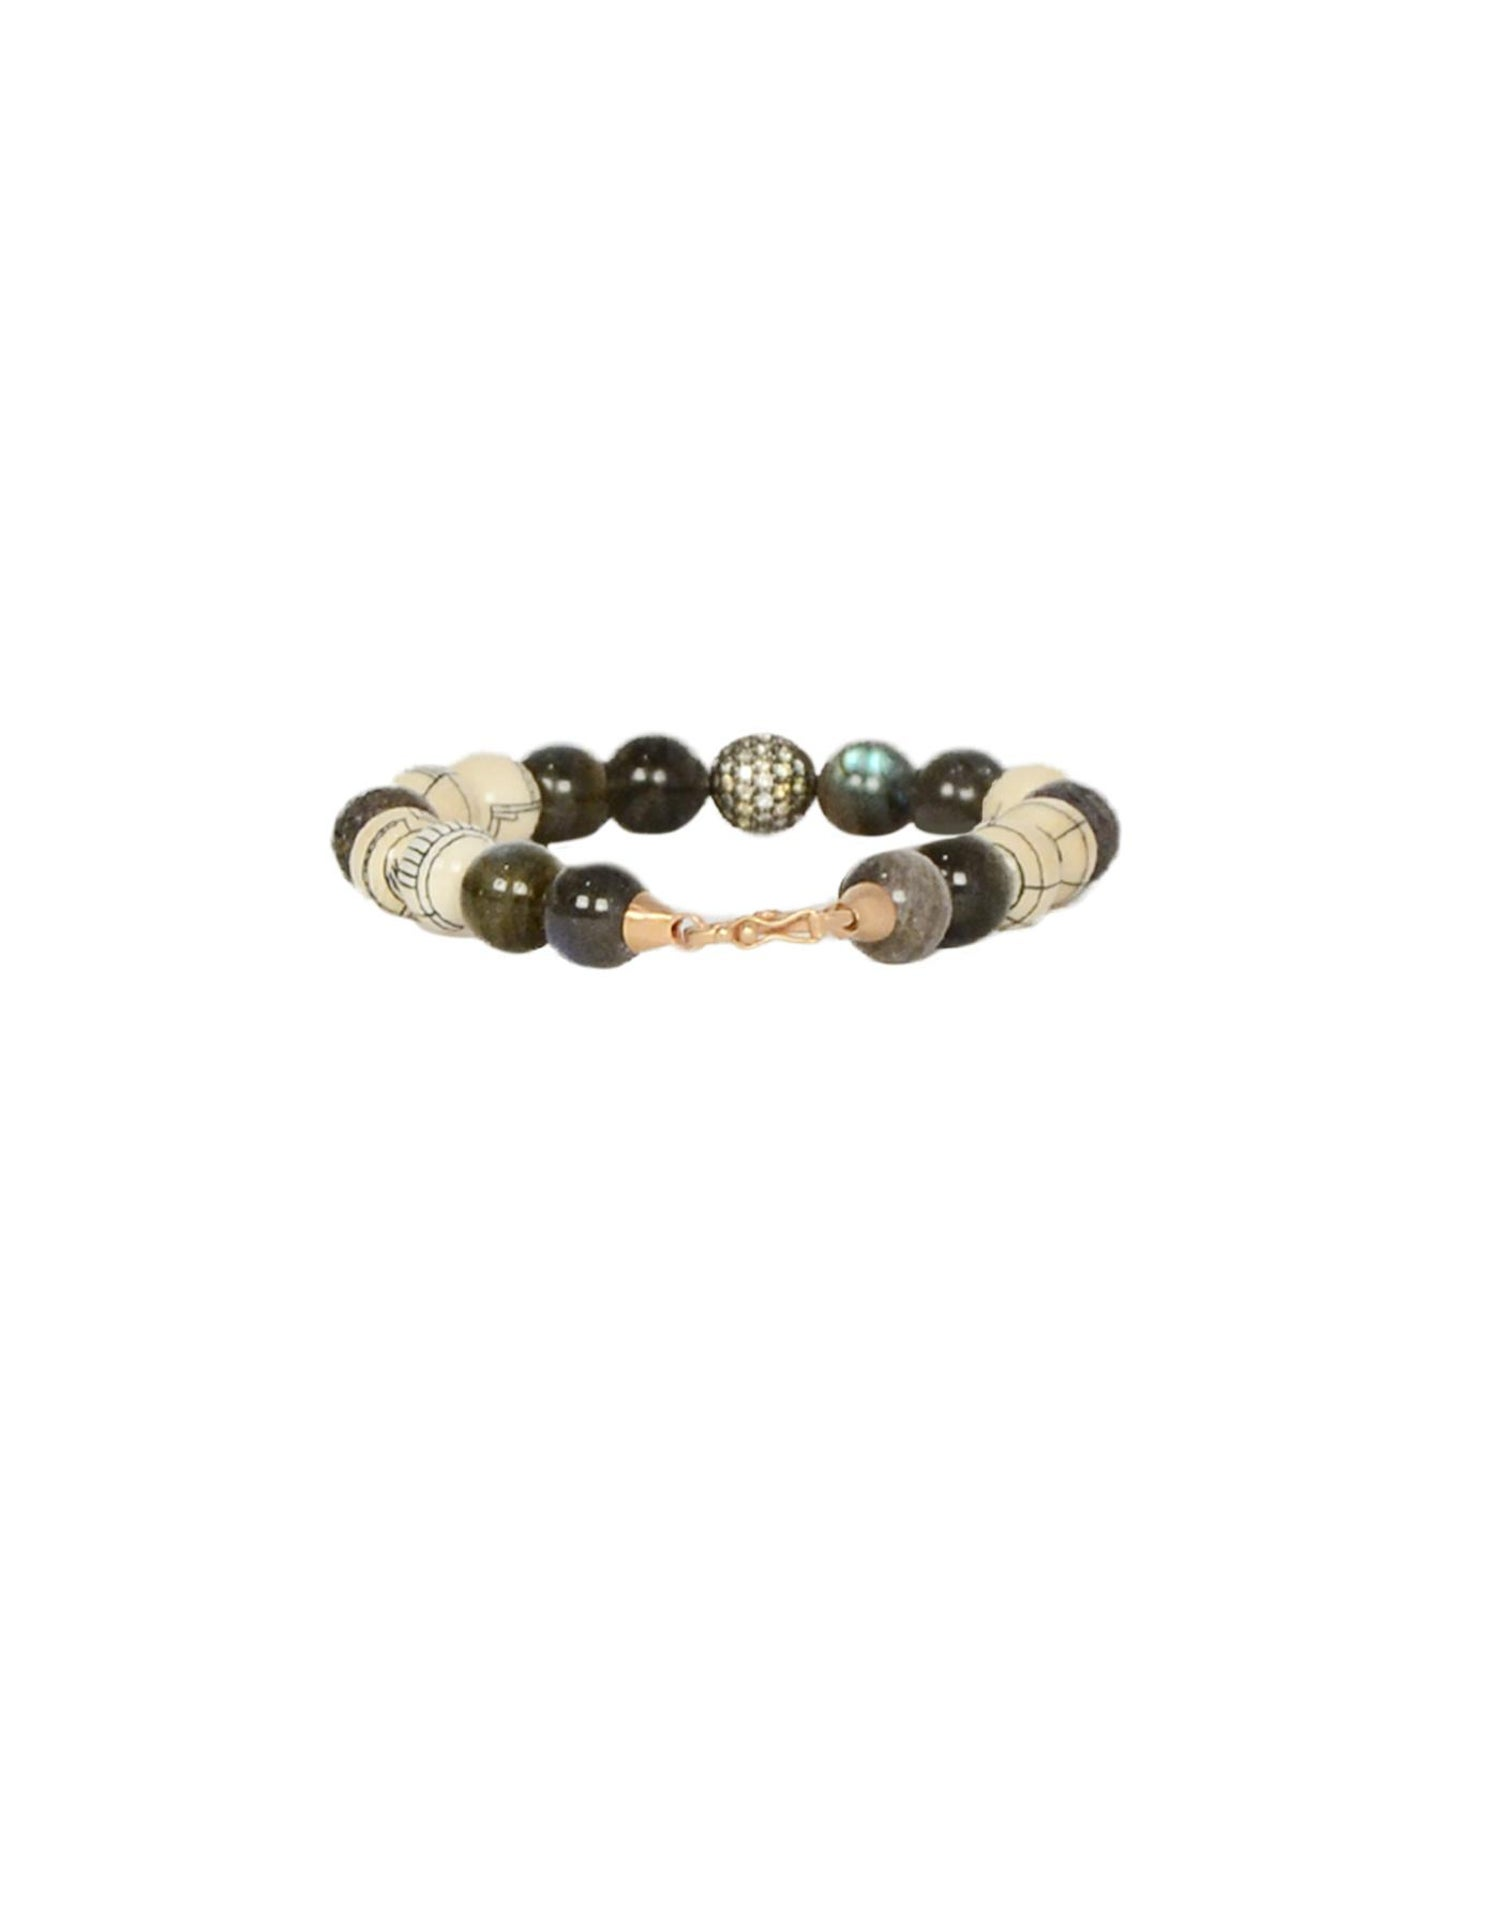 Monique Pean Fossilized Wooly Mammoth & Hand-Carved Scrimshaw Bead Bracelet